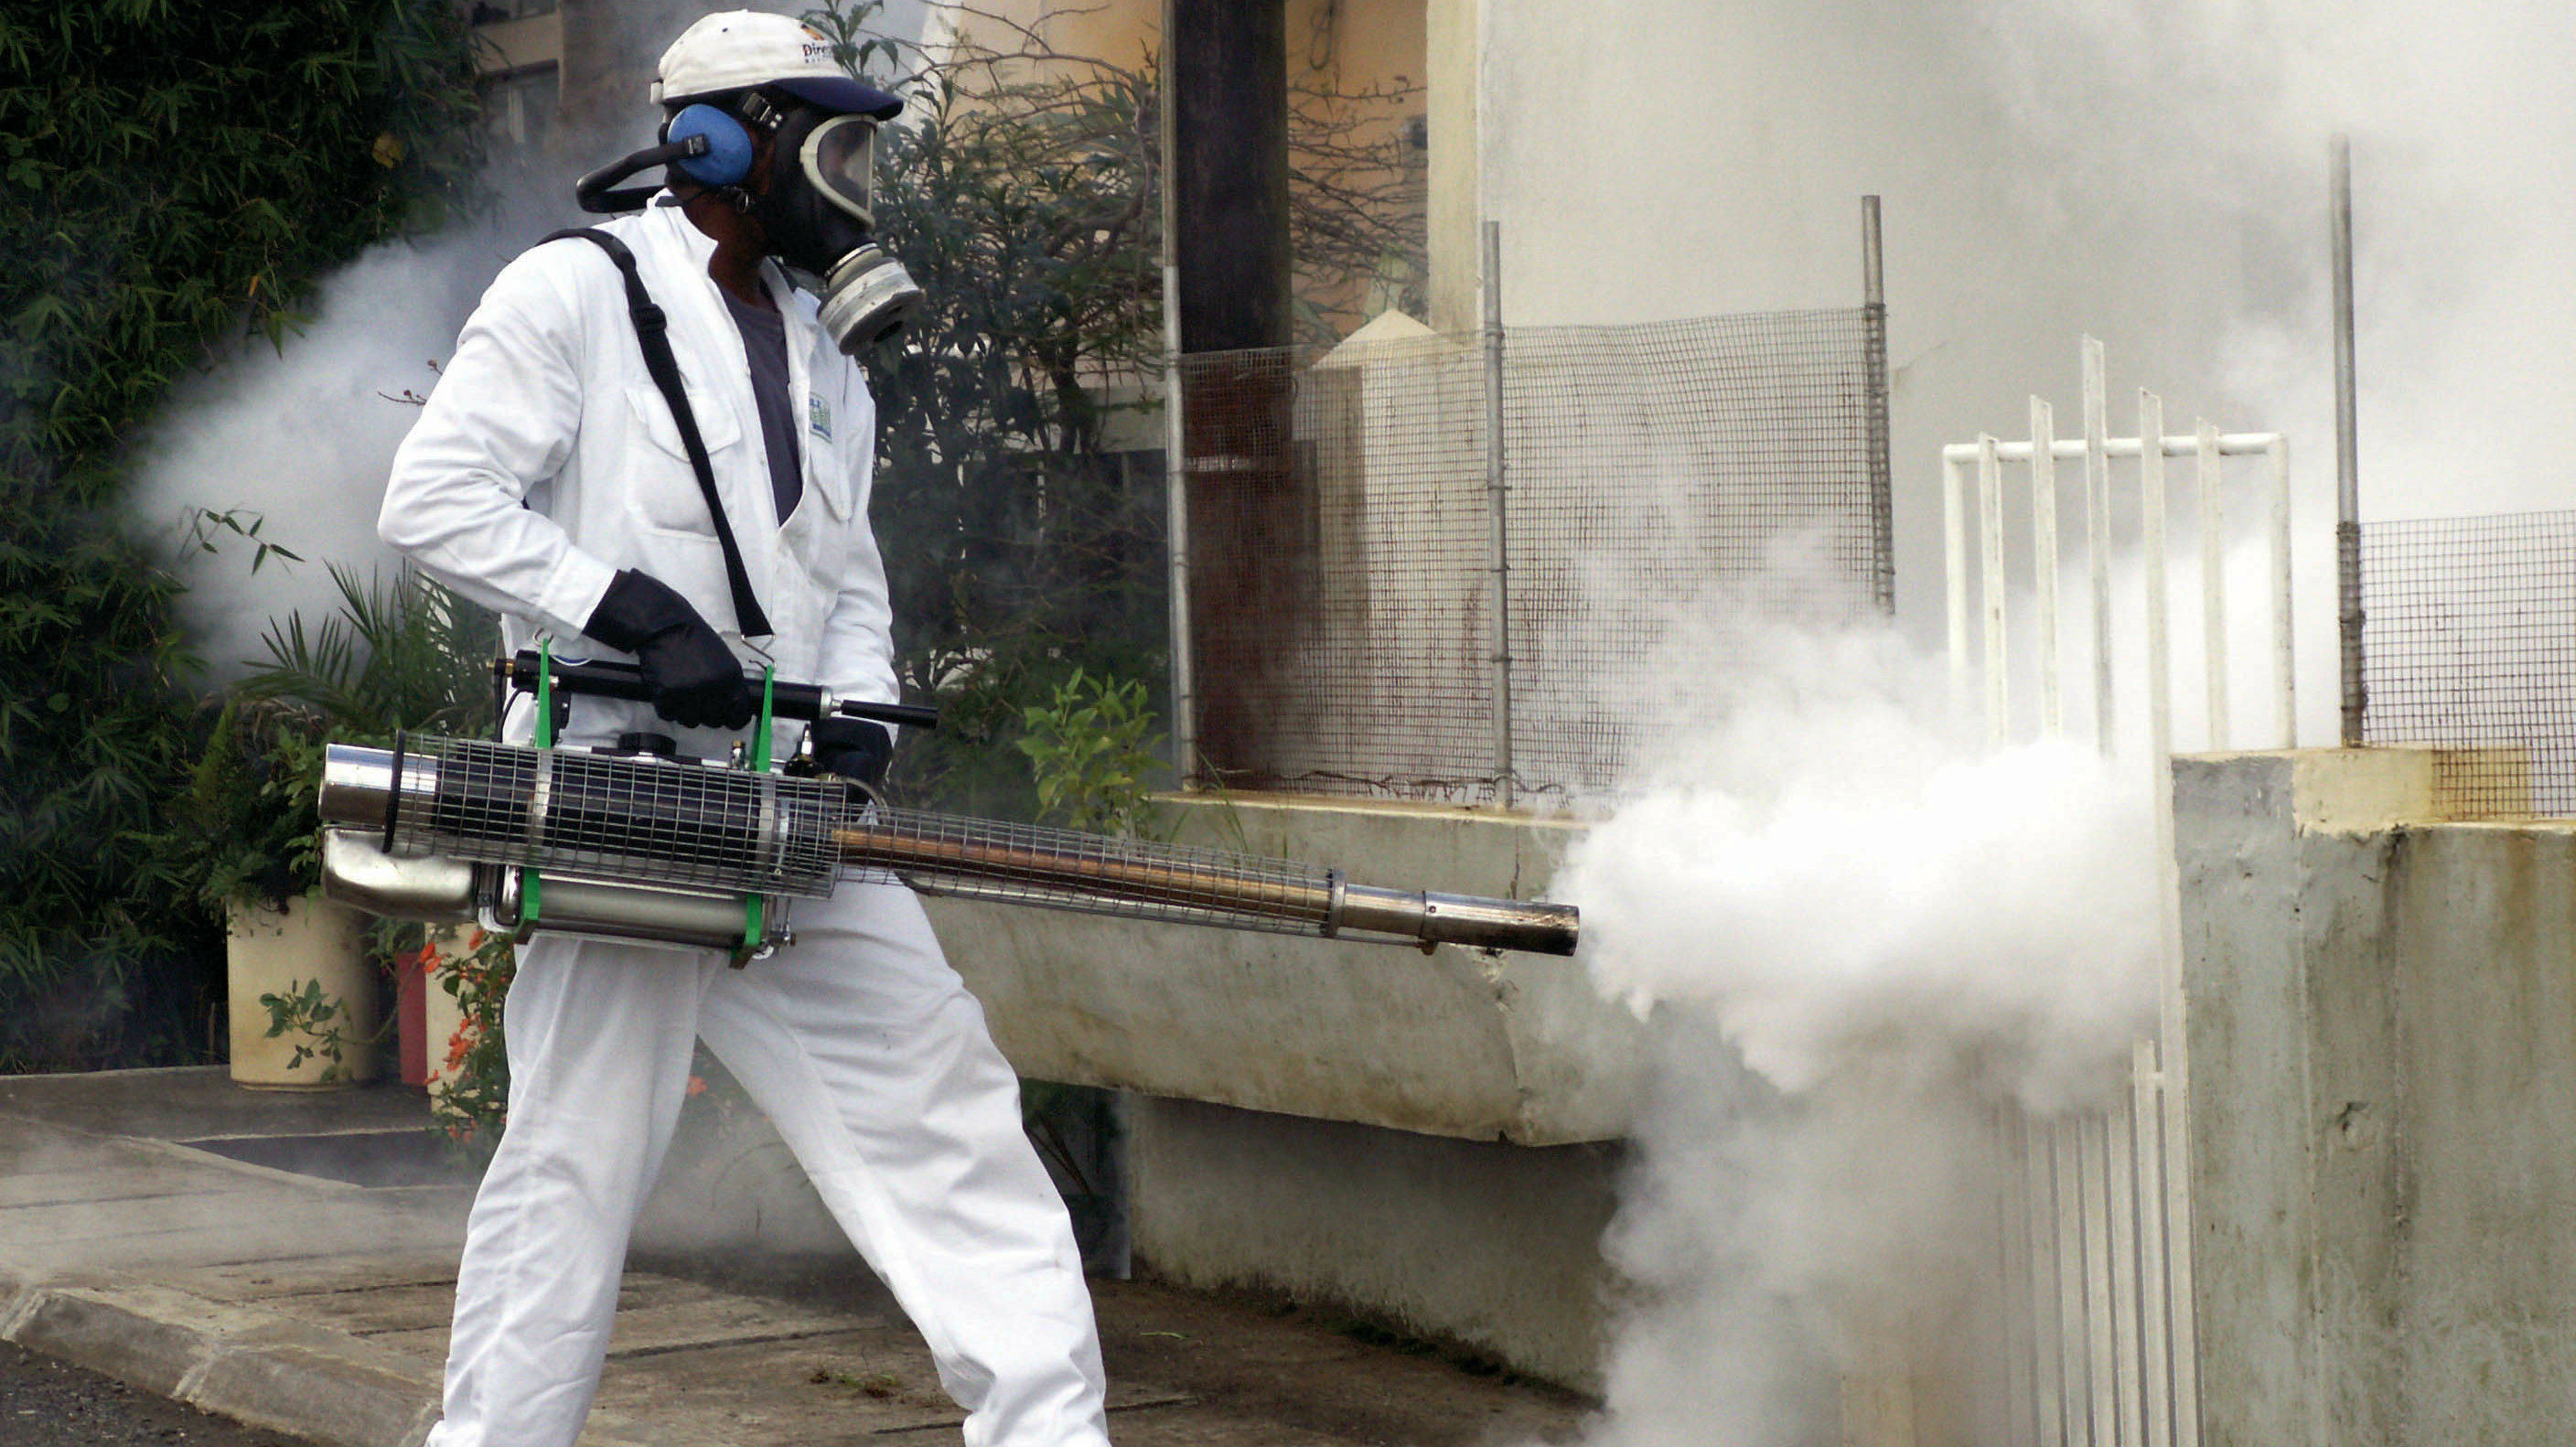 DATE IMPORTED:March 17, 2006-PHOTO TAKEN 16MAR06- A worker from the Ministry of Health sprays insecticide around homes in a bid to stem an outbreak of the crippling mosquito-borne virus, Chikungunya in Port Louis, Mauritius March 16, 2006. Chikungunya fever has infected more than 180,000 people, mostly in [Reunion but also in Mauritius, Seychelles, Mayotte and Madagascar], all located off the southeast coast of Africa. Picture taken on March 16, 2006.